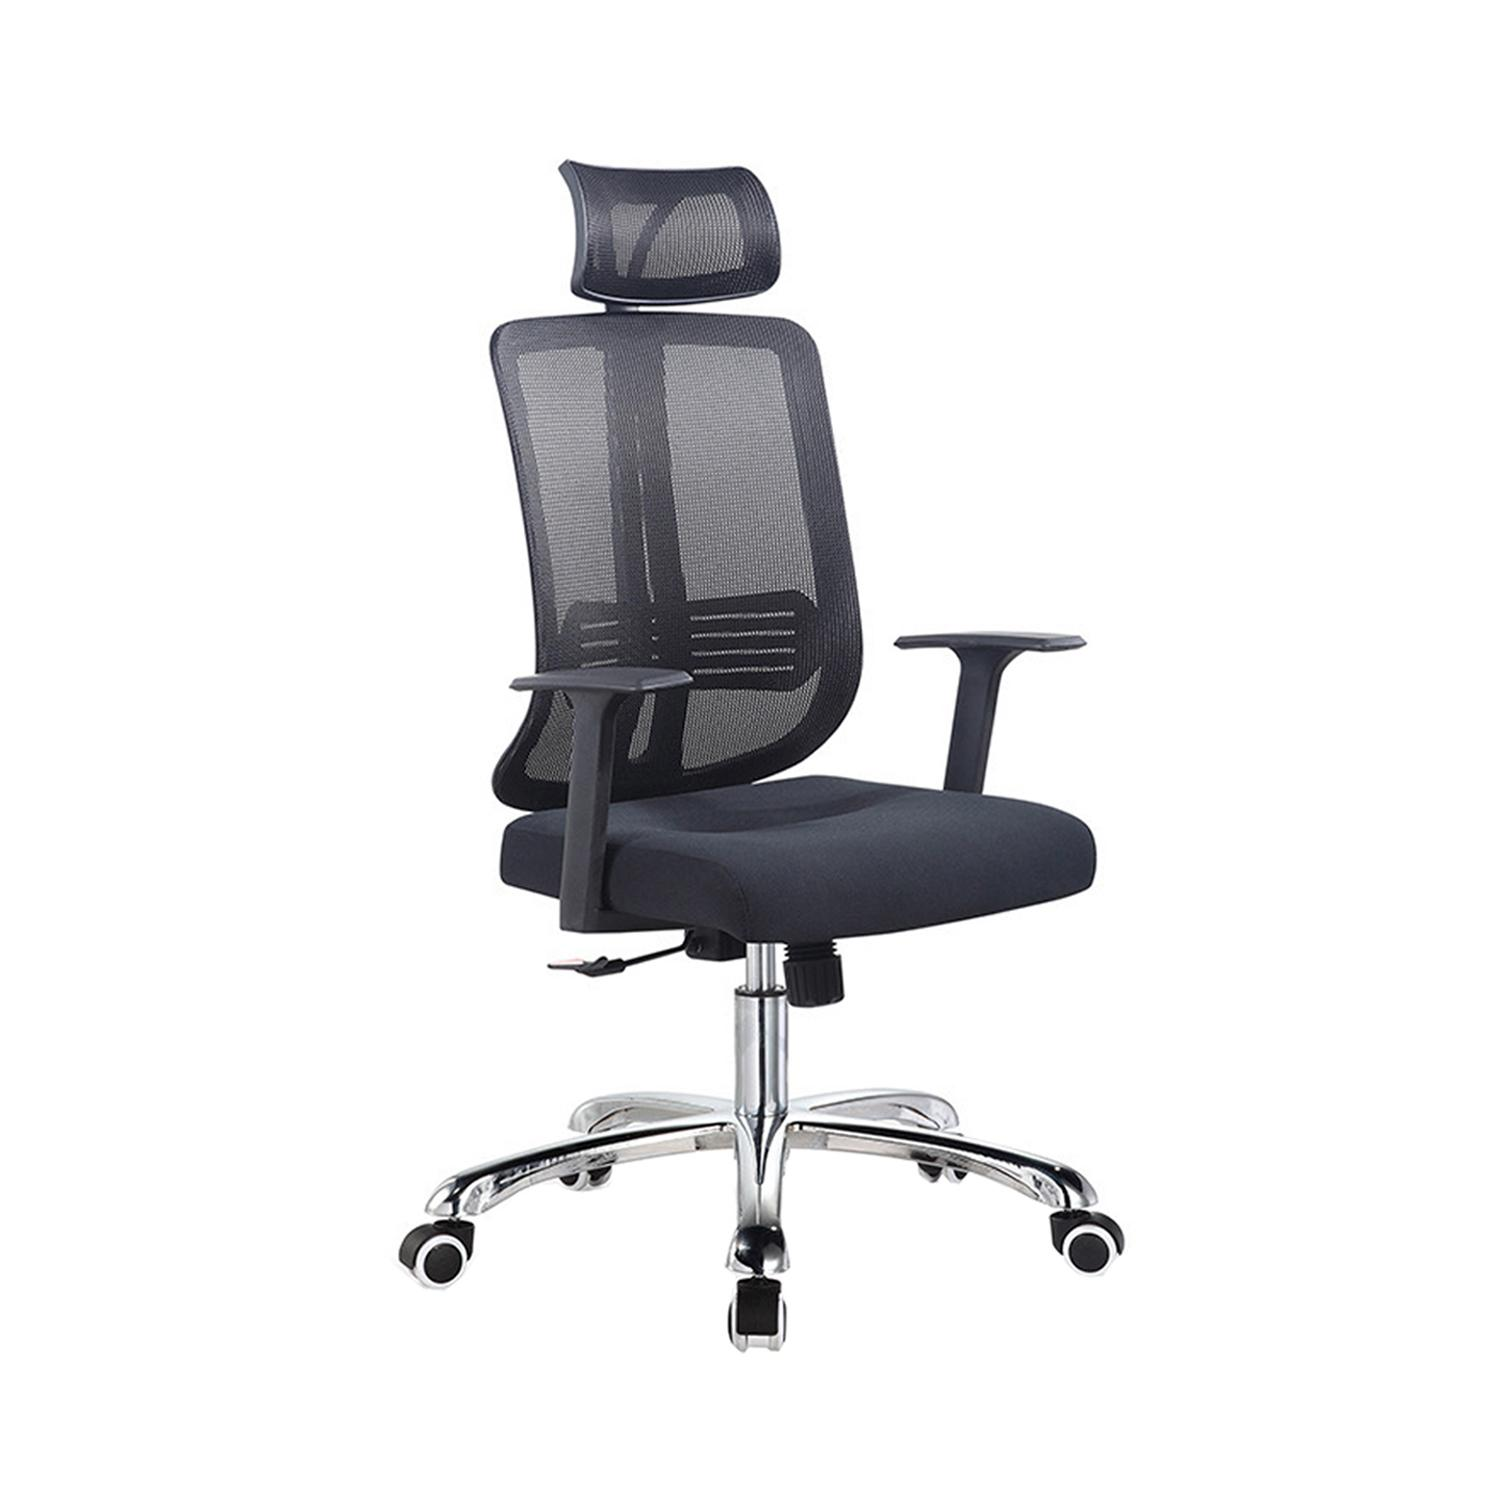 LIVING MALL_Letha Office Chair in Black_Height Back Rest_FREE DELIVERY